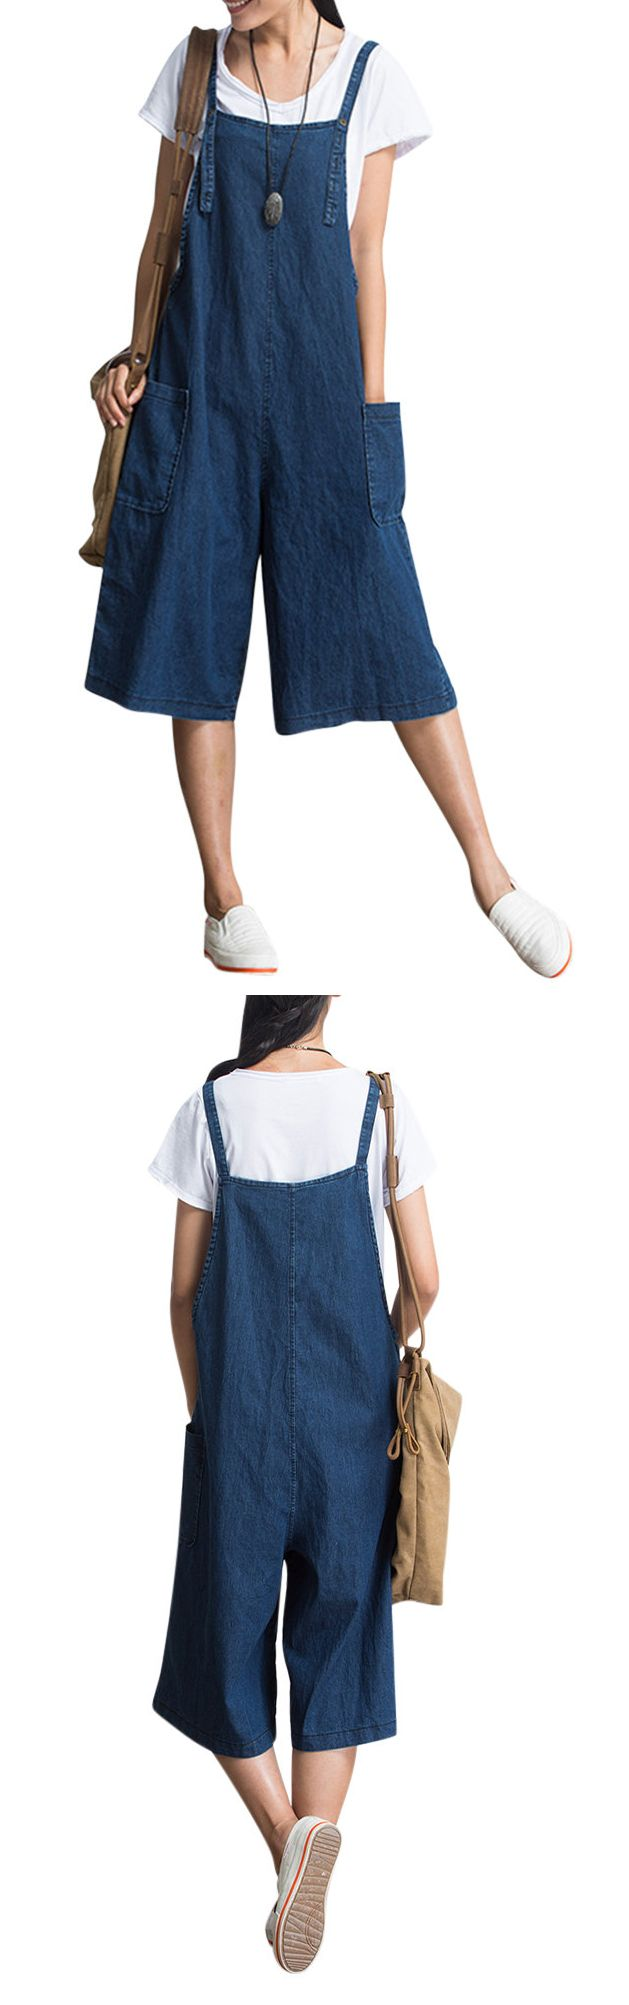 US$11.89 Loose Pure Color Strap Pocket Jumpsuit Trousers Overalls For Women